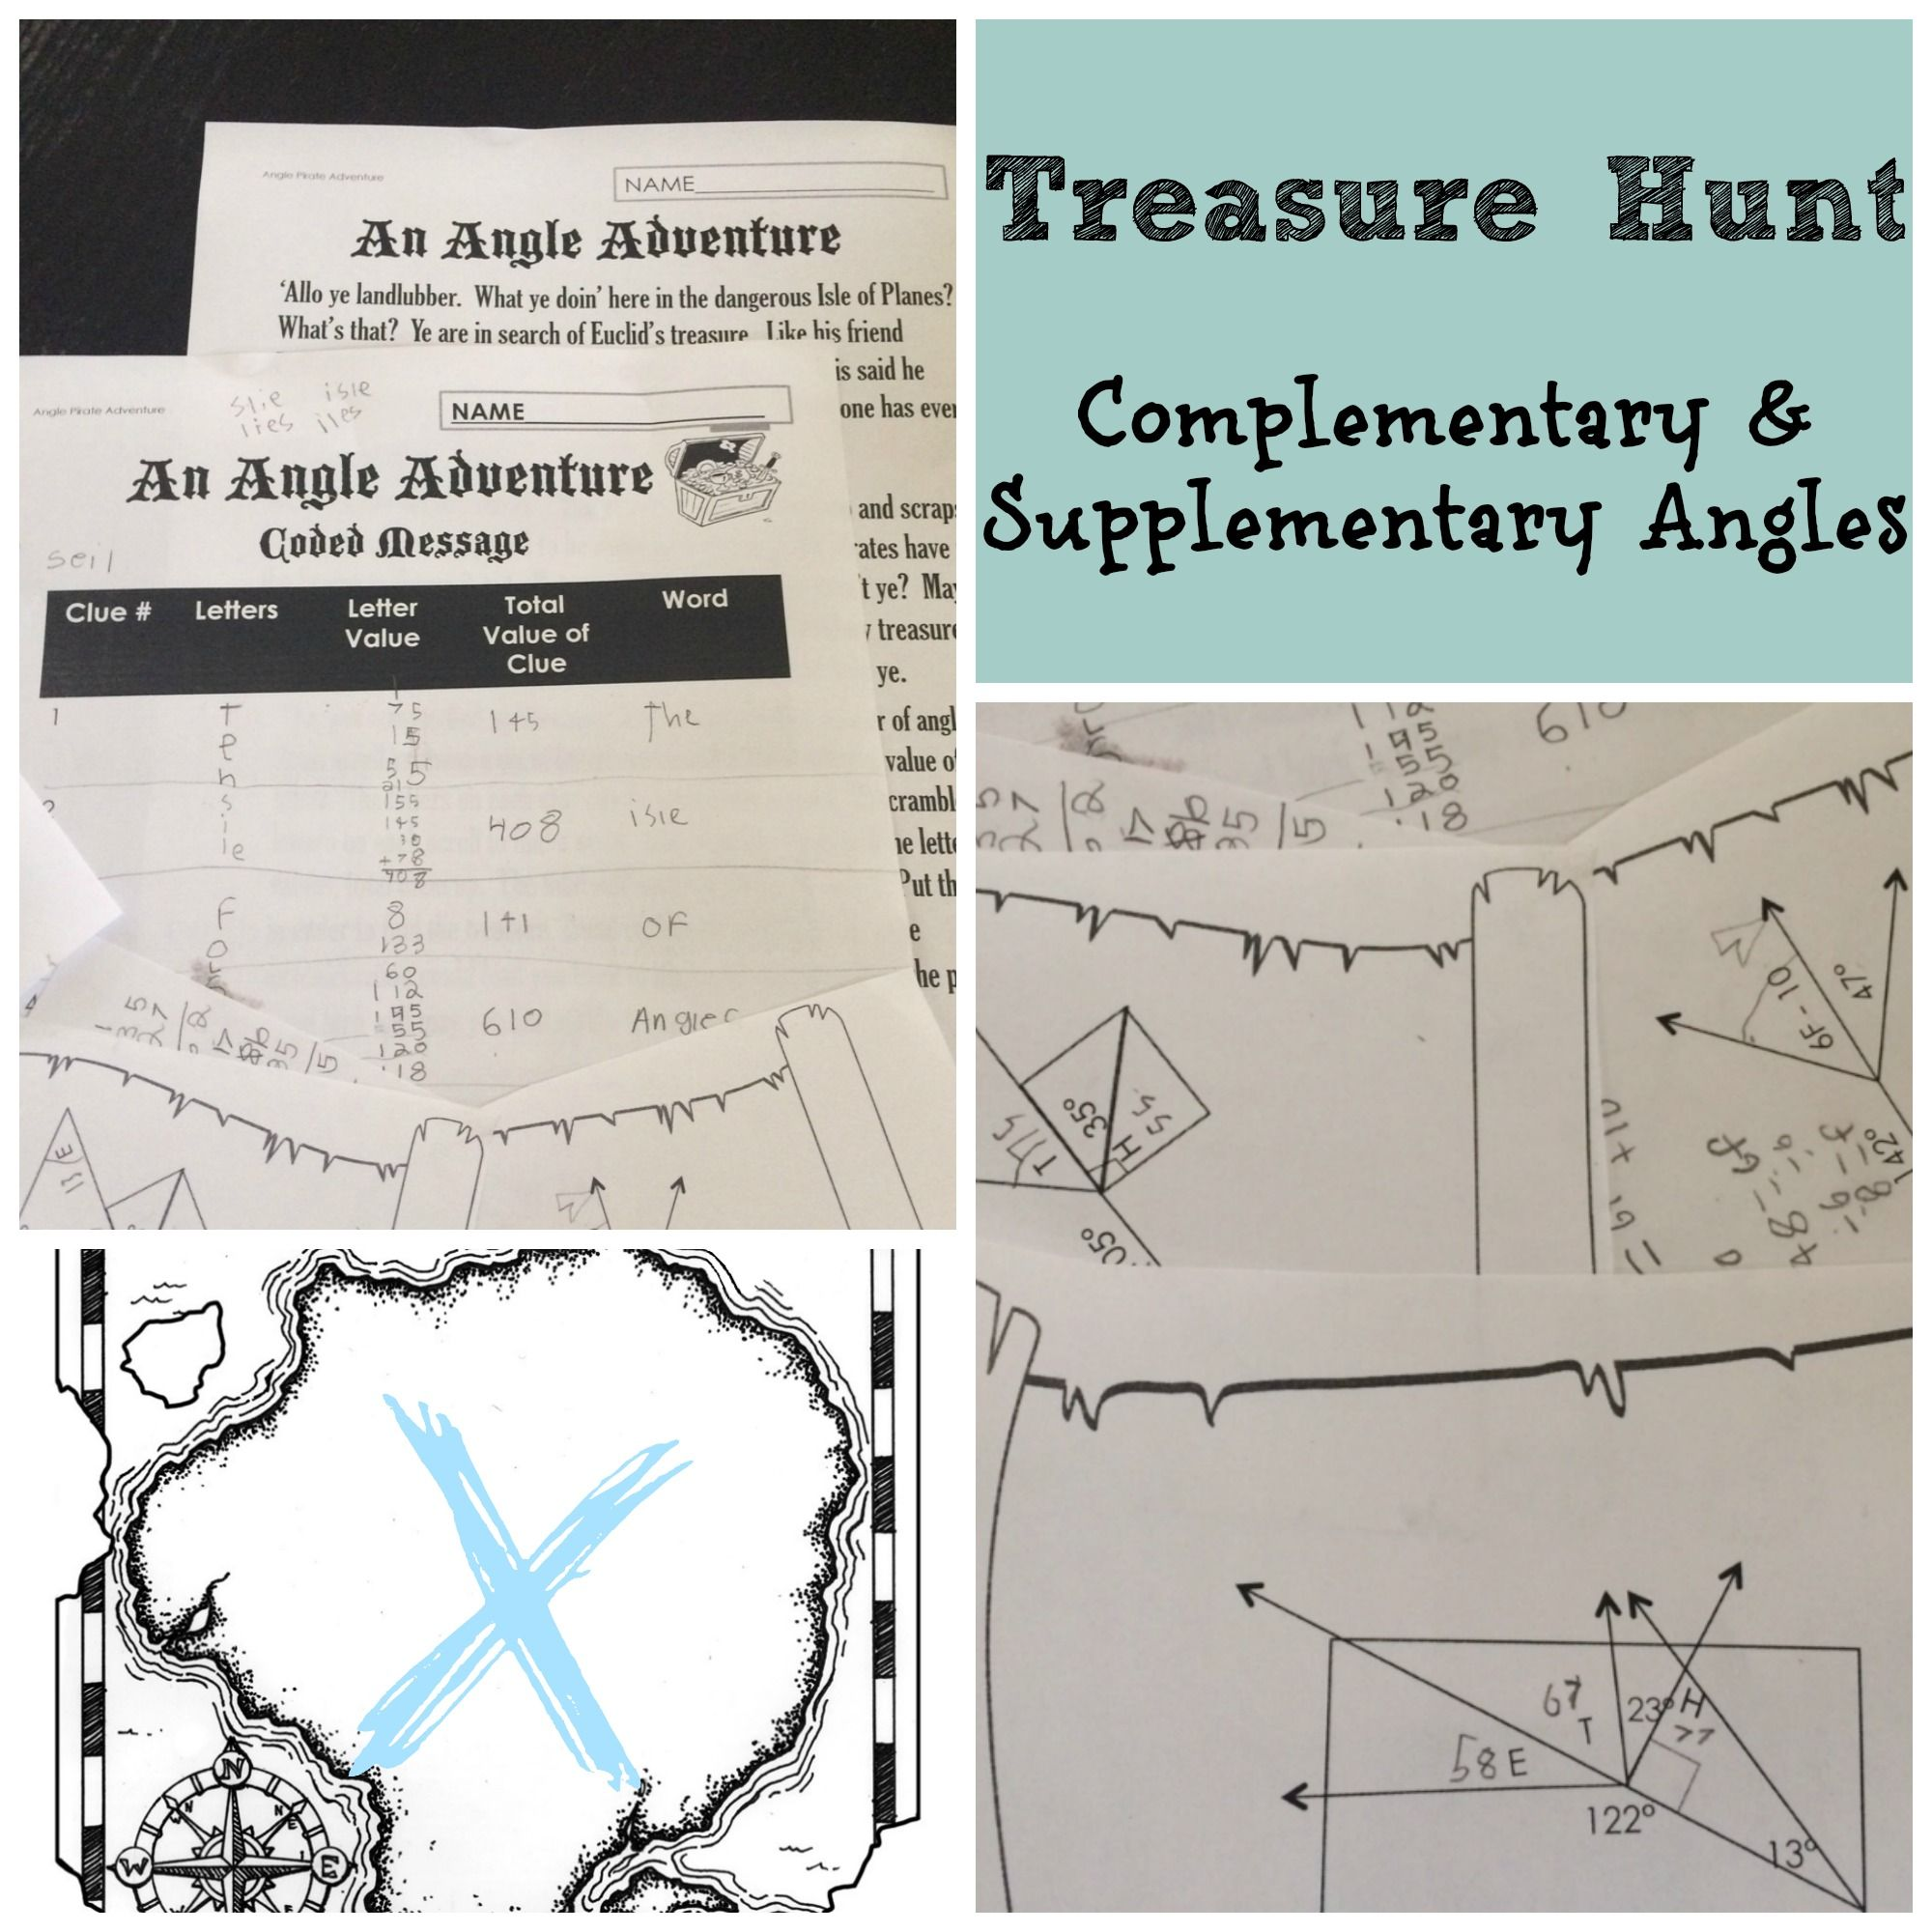 Complementary And Supplementary Angles Activity Treasure